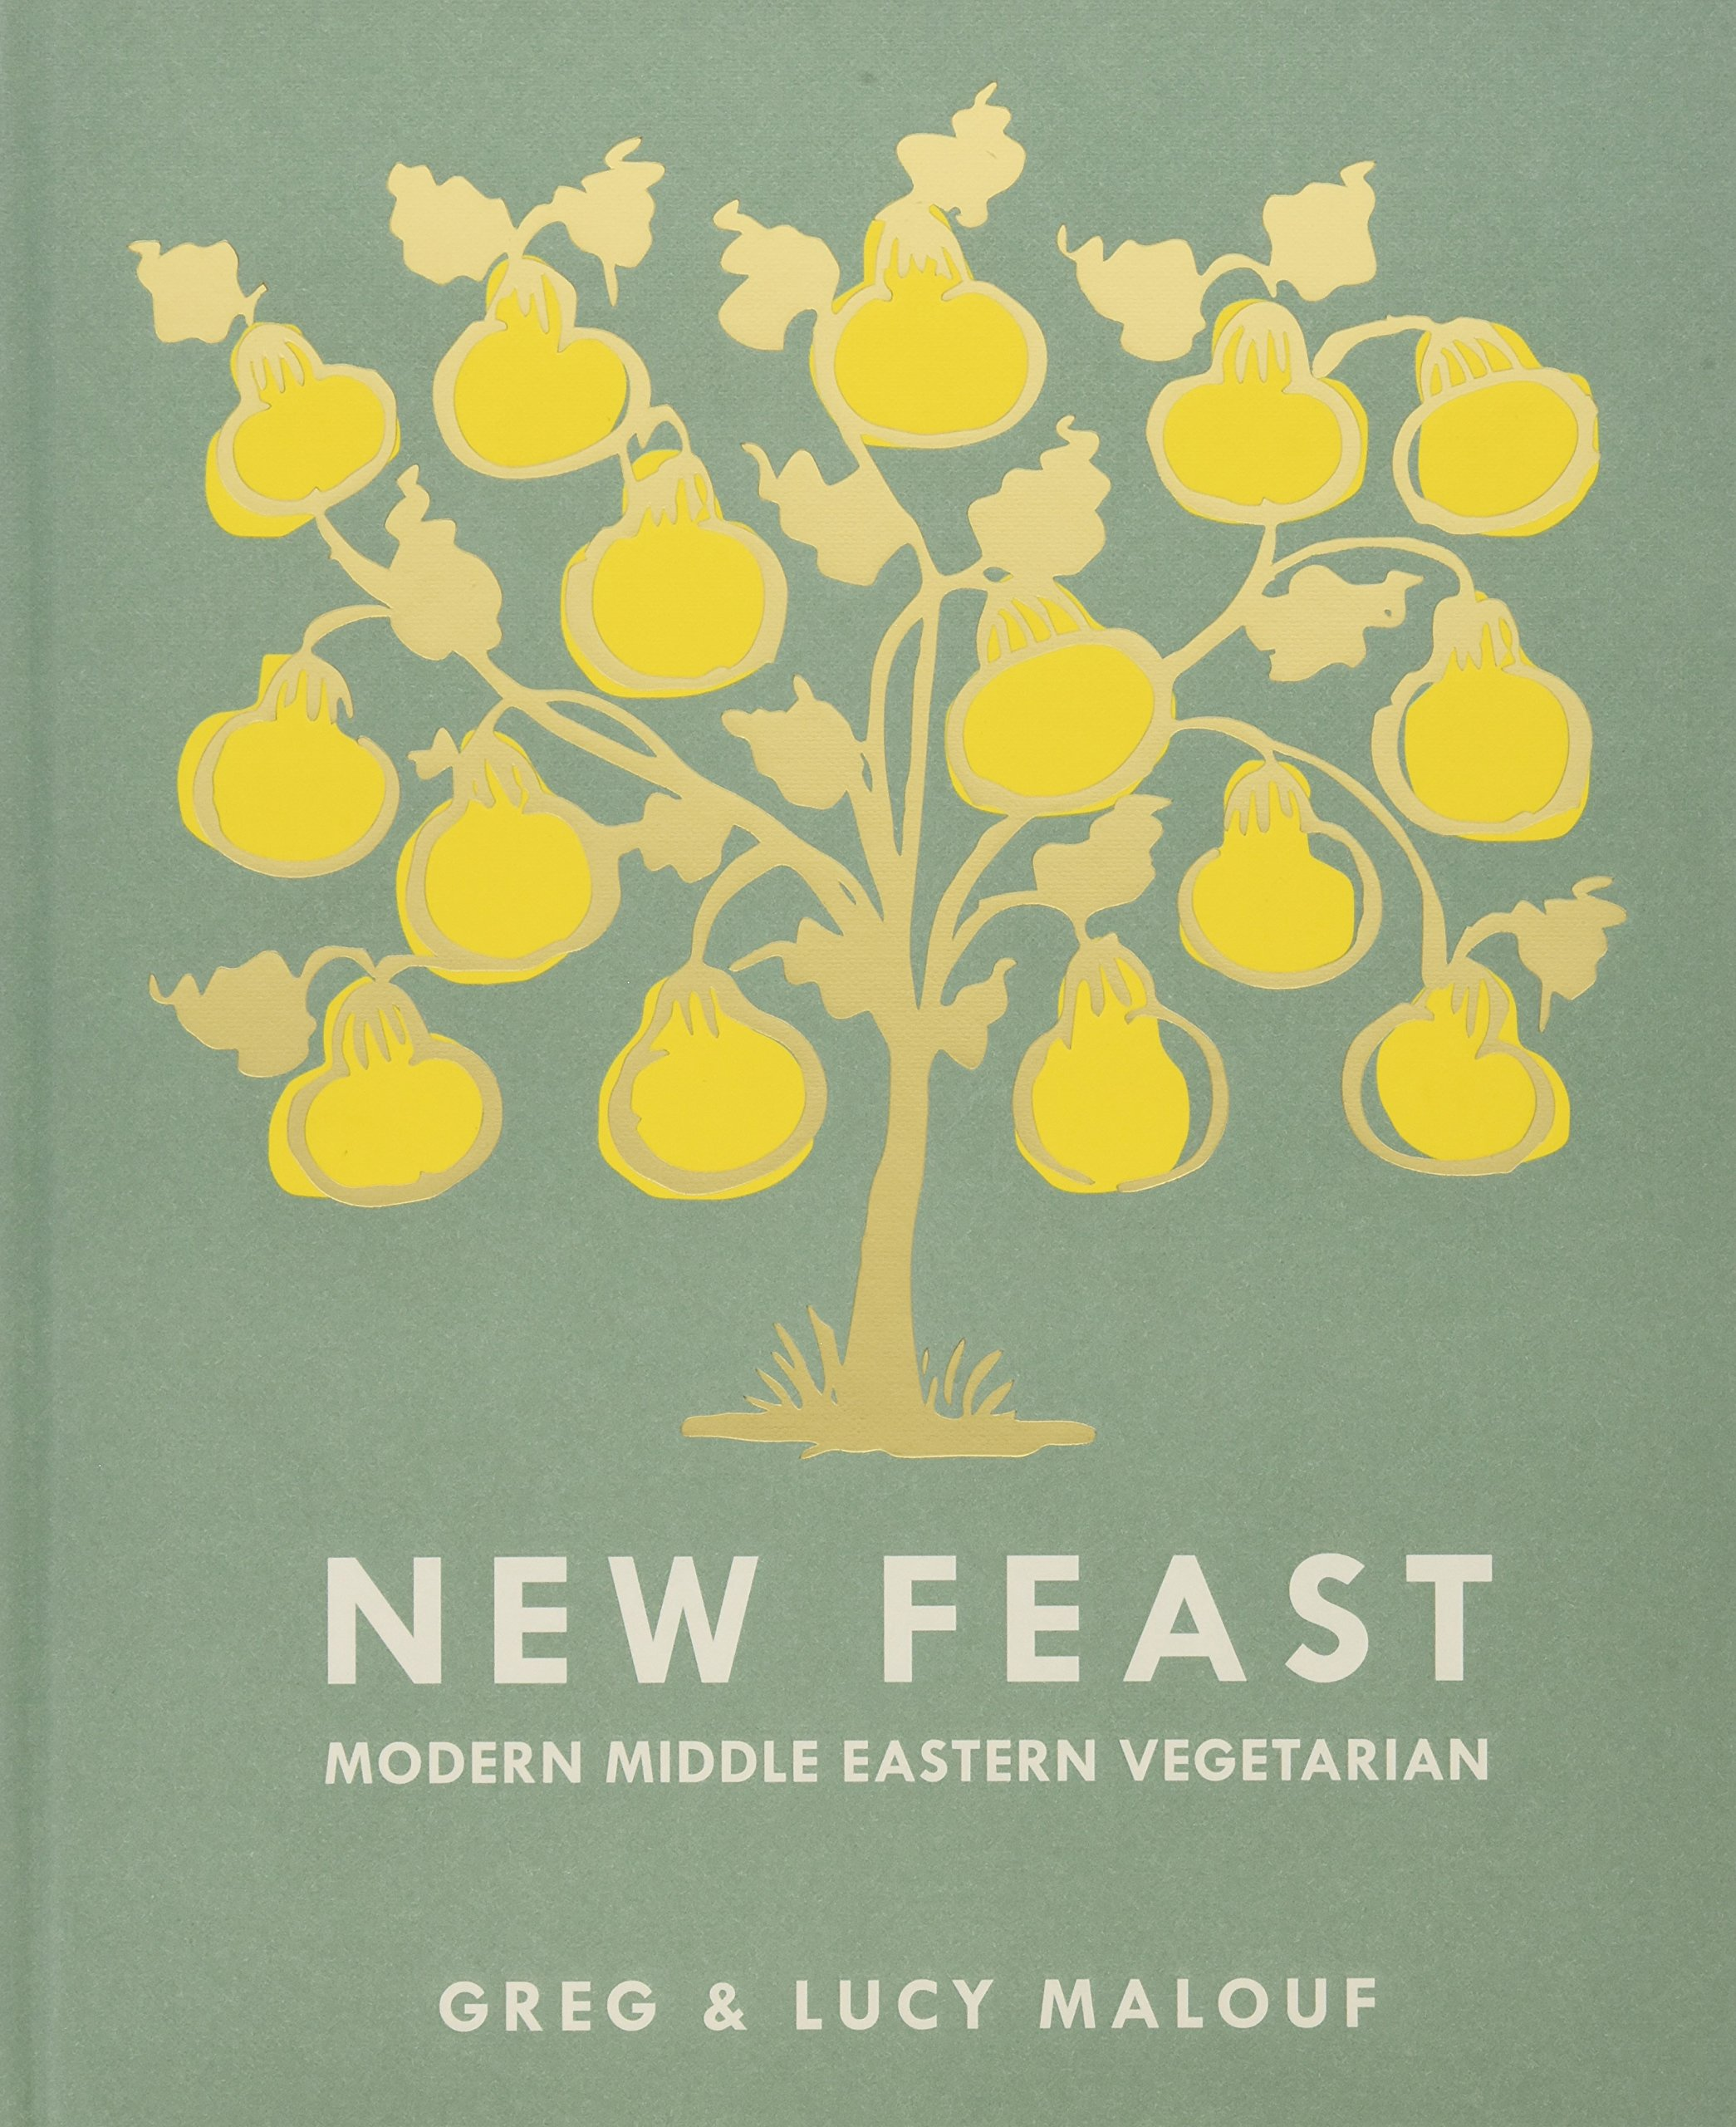 new feast modern middle eastern ve arian lucy malouf greg